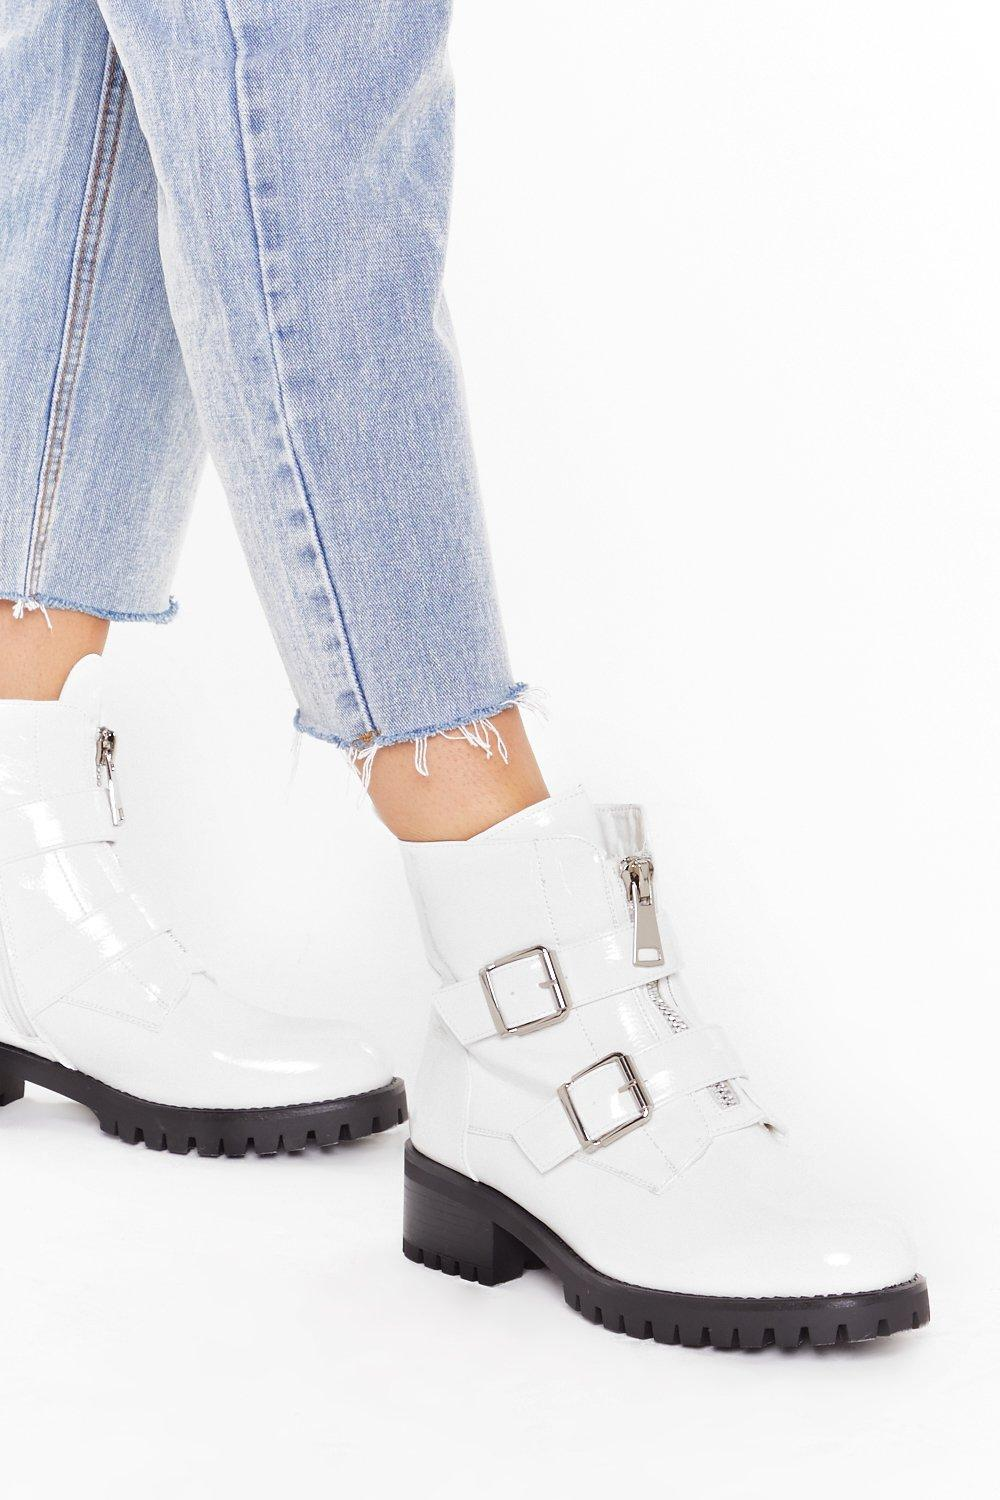 Image of Tell Zip How Zip Is Faux Leather Biker Boots